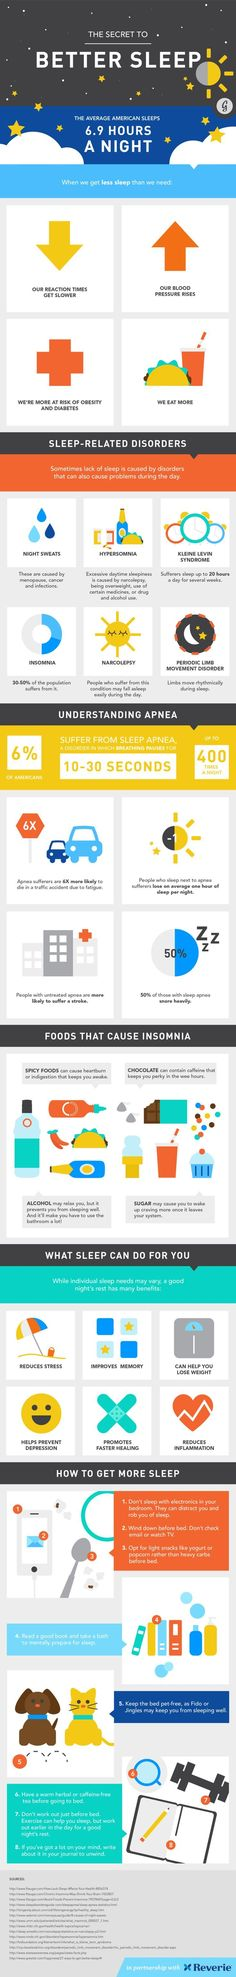 Everything You Need to Know to Sleep Better, Tonight #sleep #rest #relax